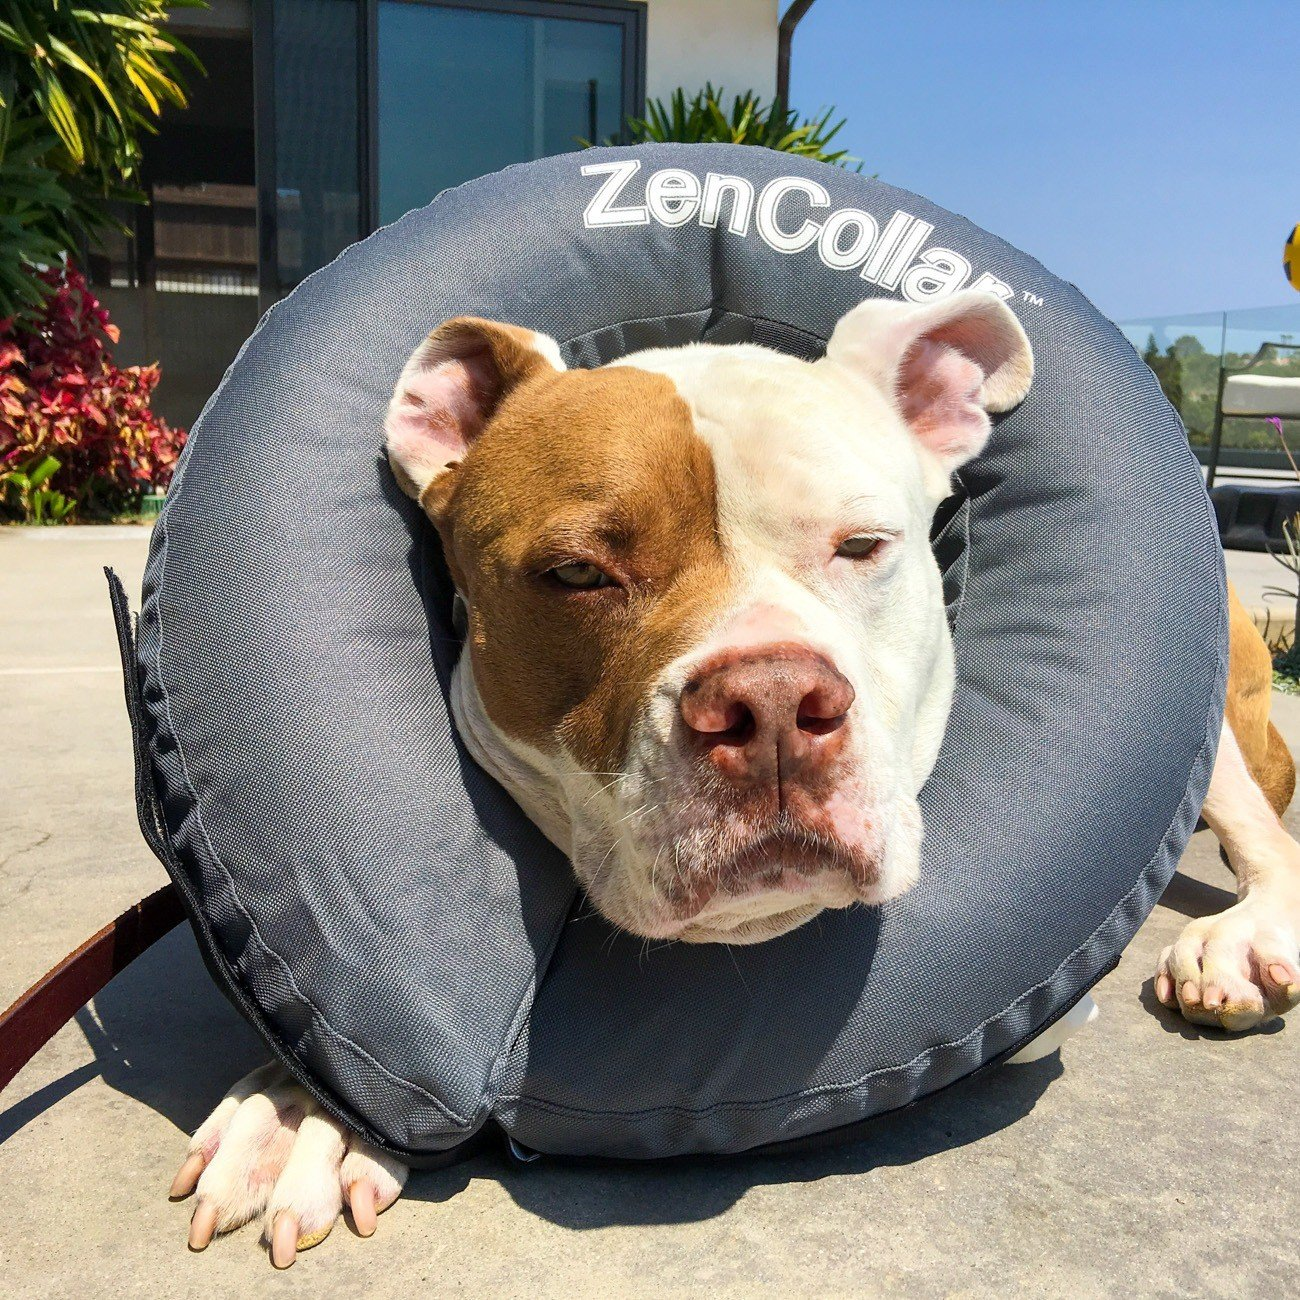 Alternatives to the e-collar (cone of shame) for dogs include a blow-up ring (did not work for us).